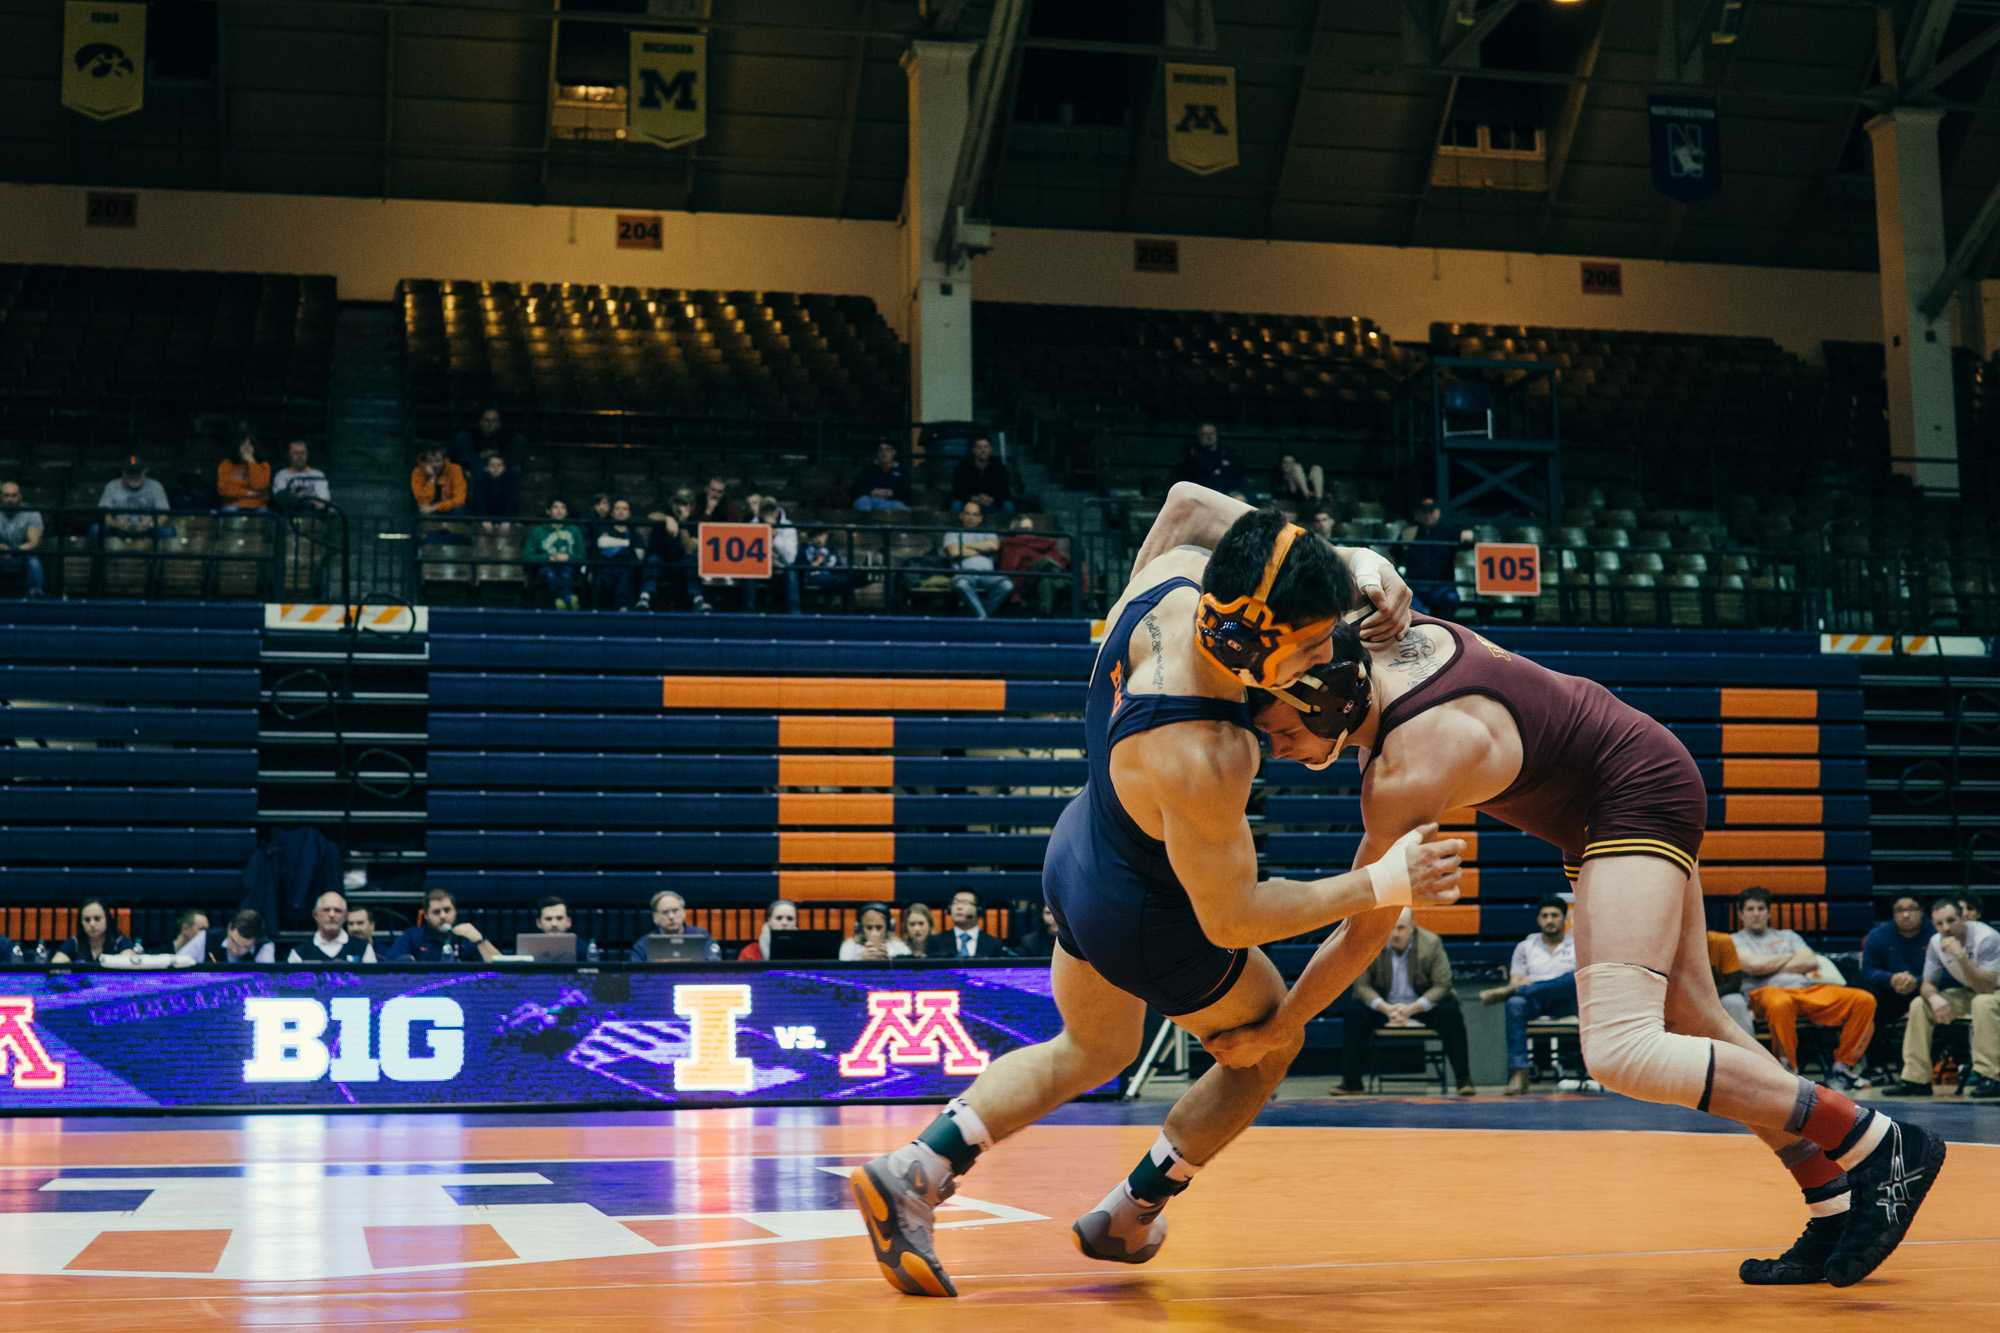 Illinois' Isaiah Martinez grapples against Minnesota's Brandon Kingsley in Huff Hall on Feb. 12 2016. The Illini won 19-16.